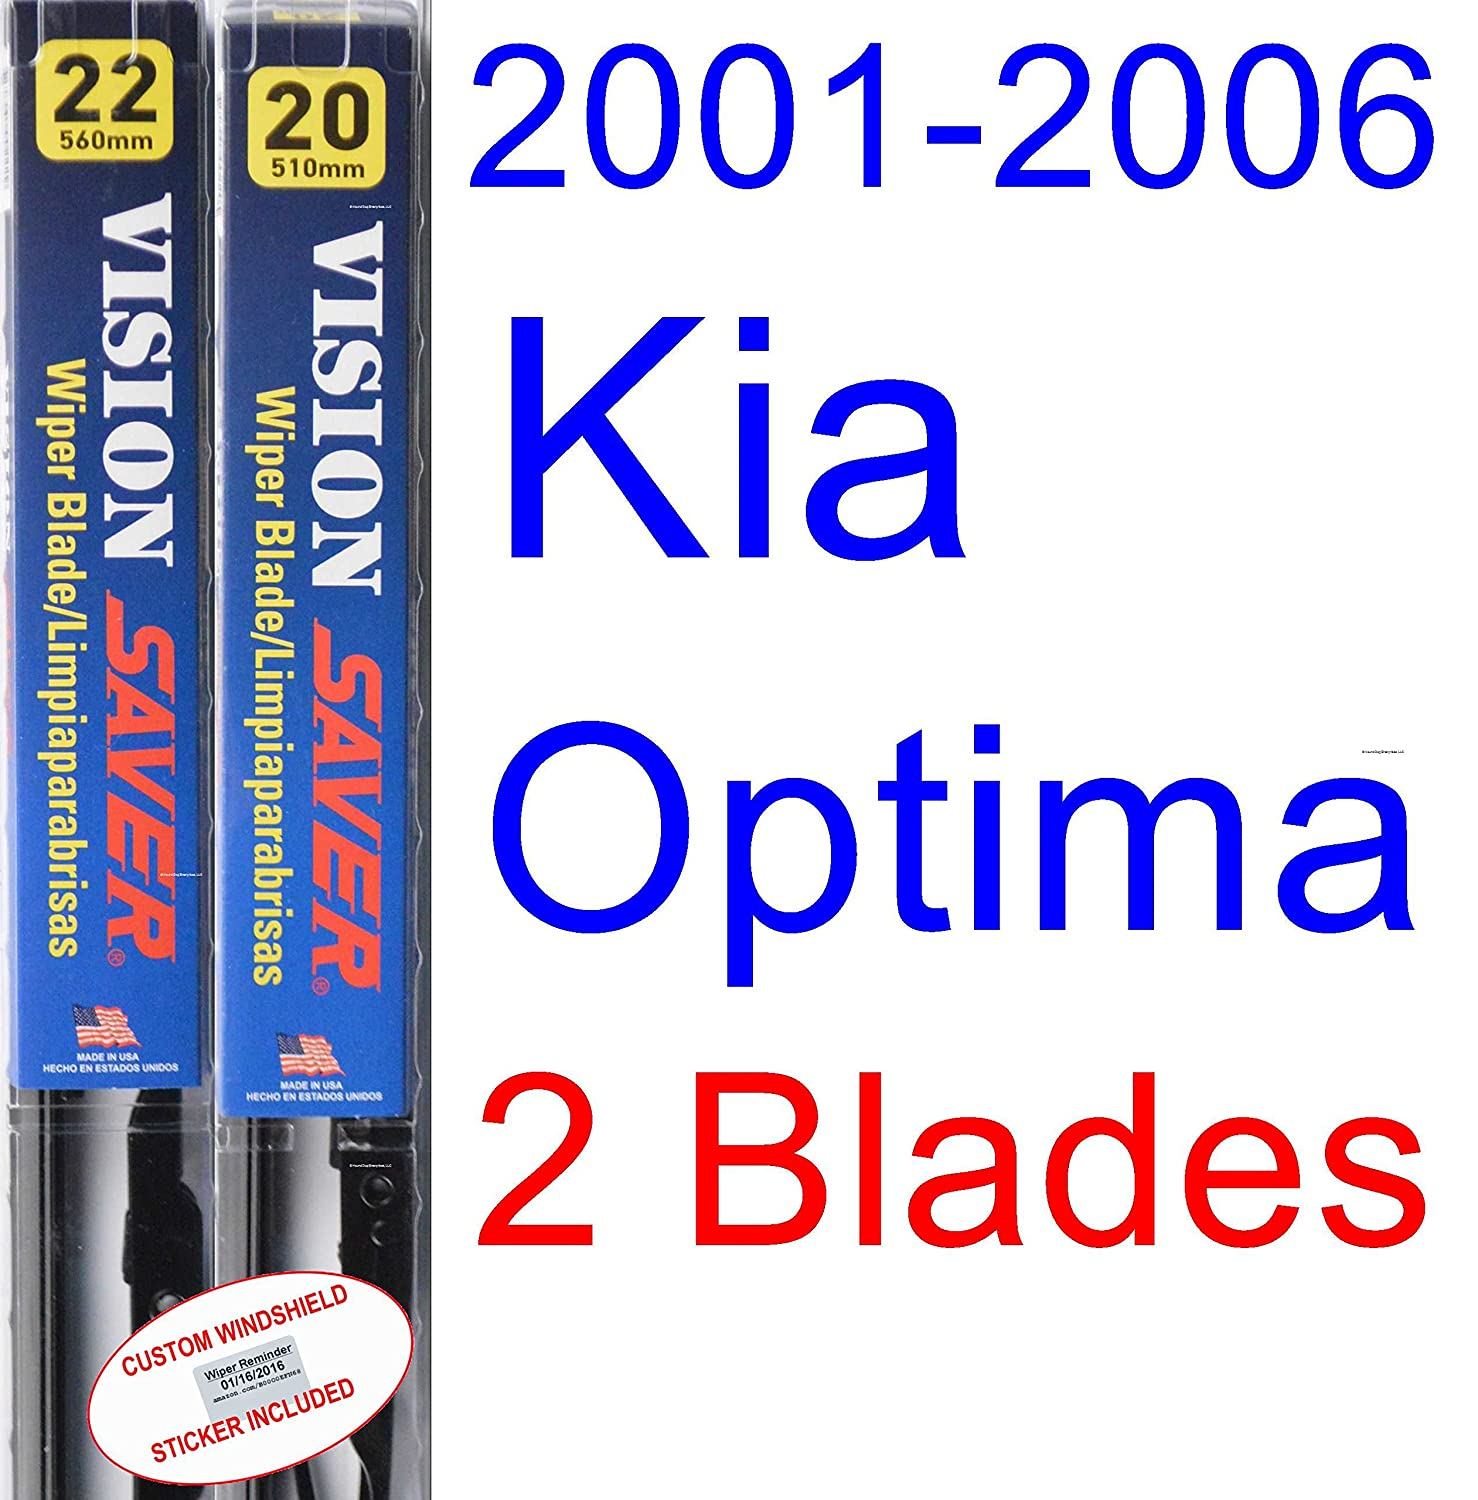 Amazon.com: 2001-2006 Kia Optima Replacement Wiper Blade Set/Kit ...